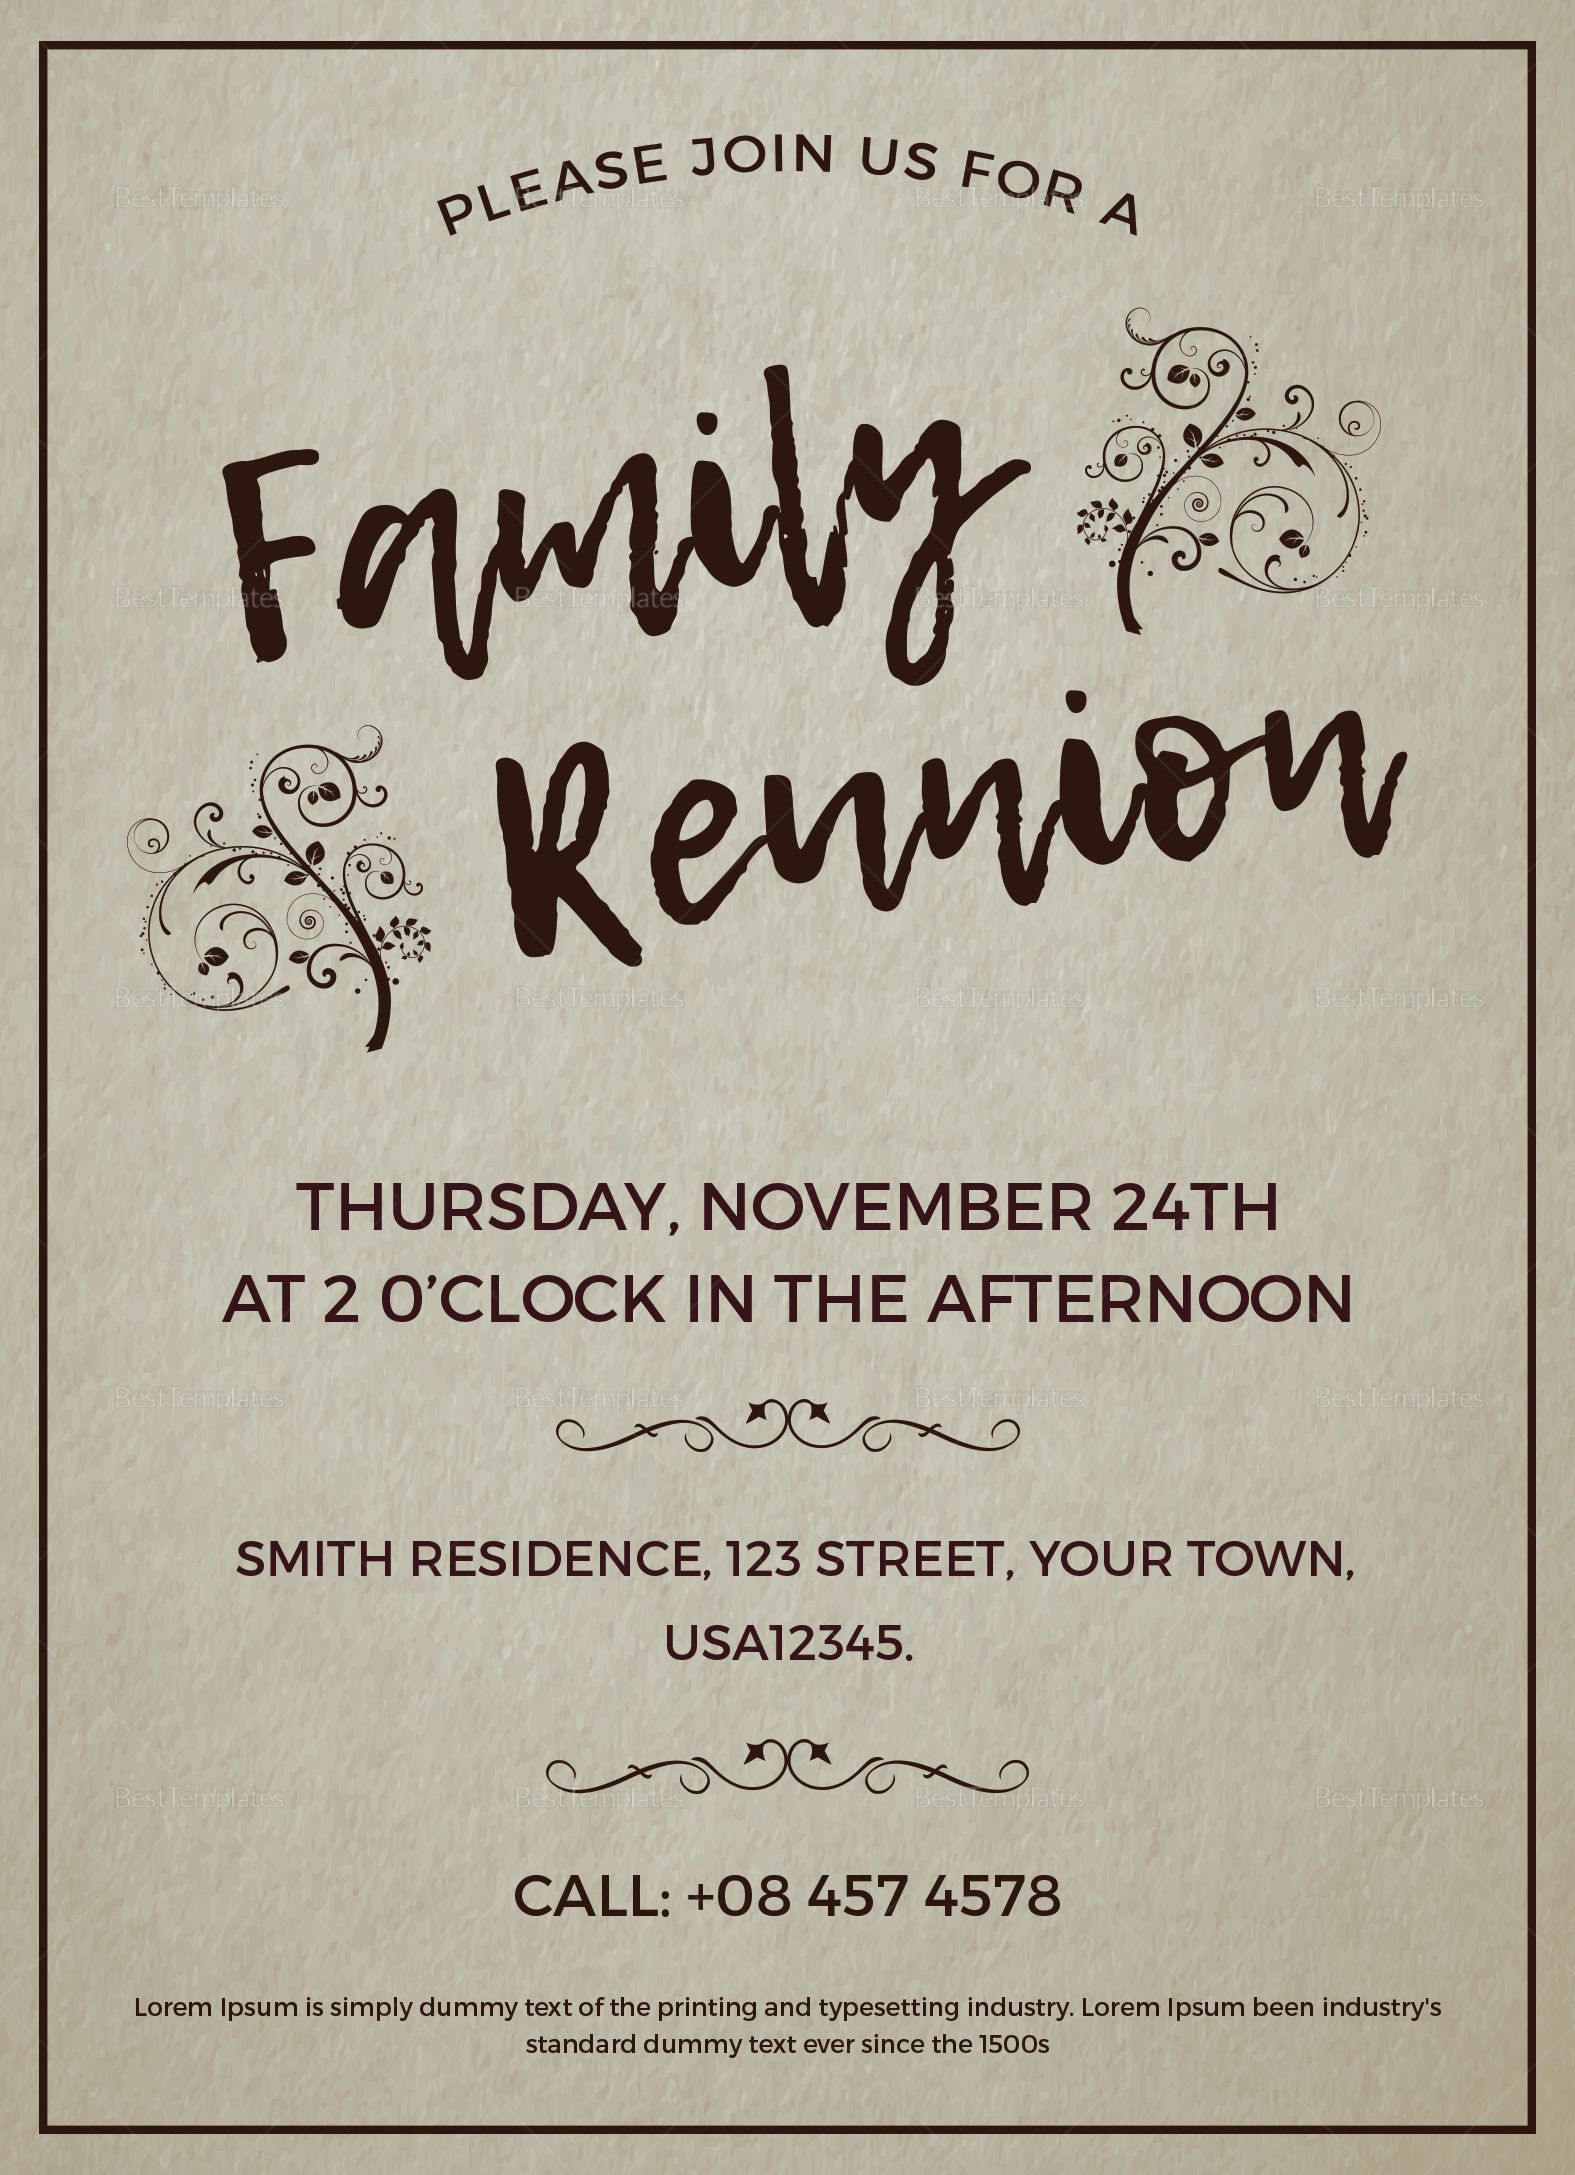 005 Archaicawful Family Reunion Flyer Template High Resolution  Templates Free ForFull